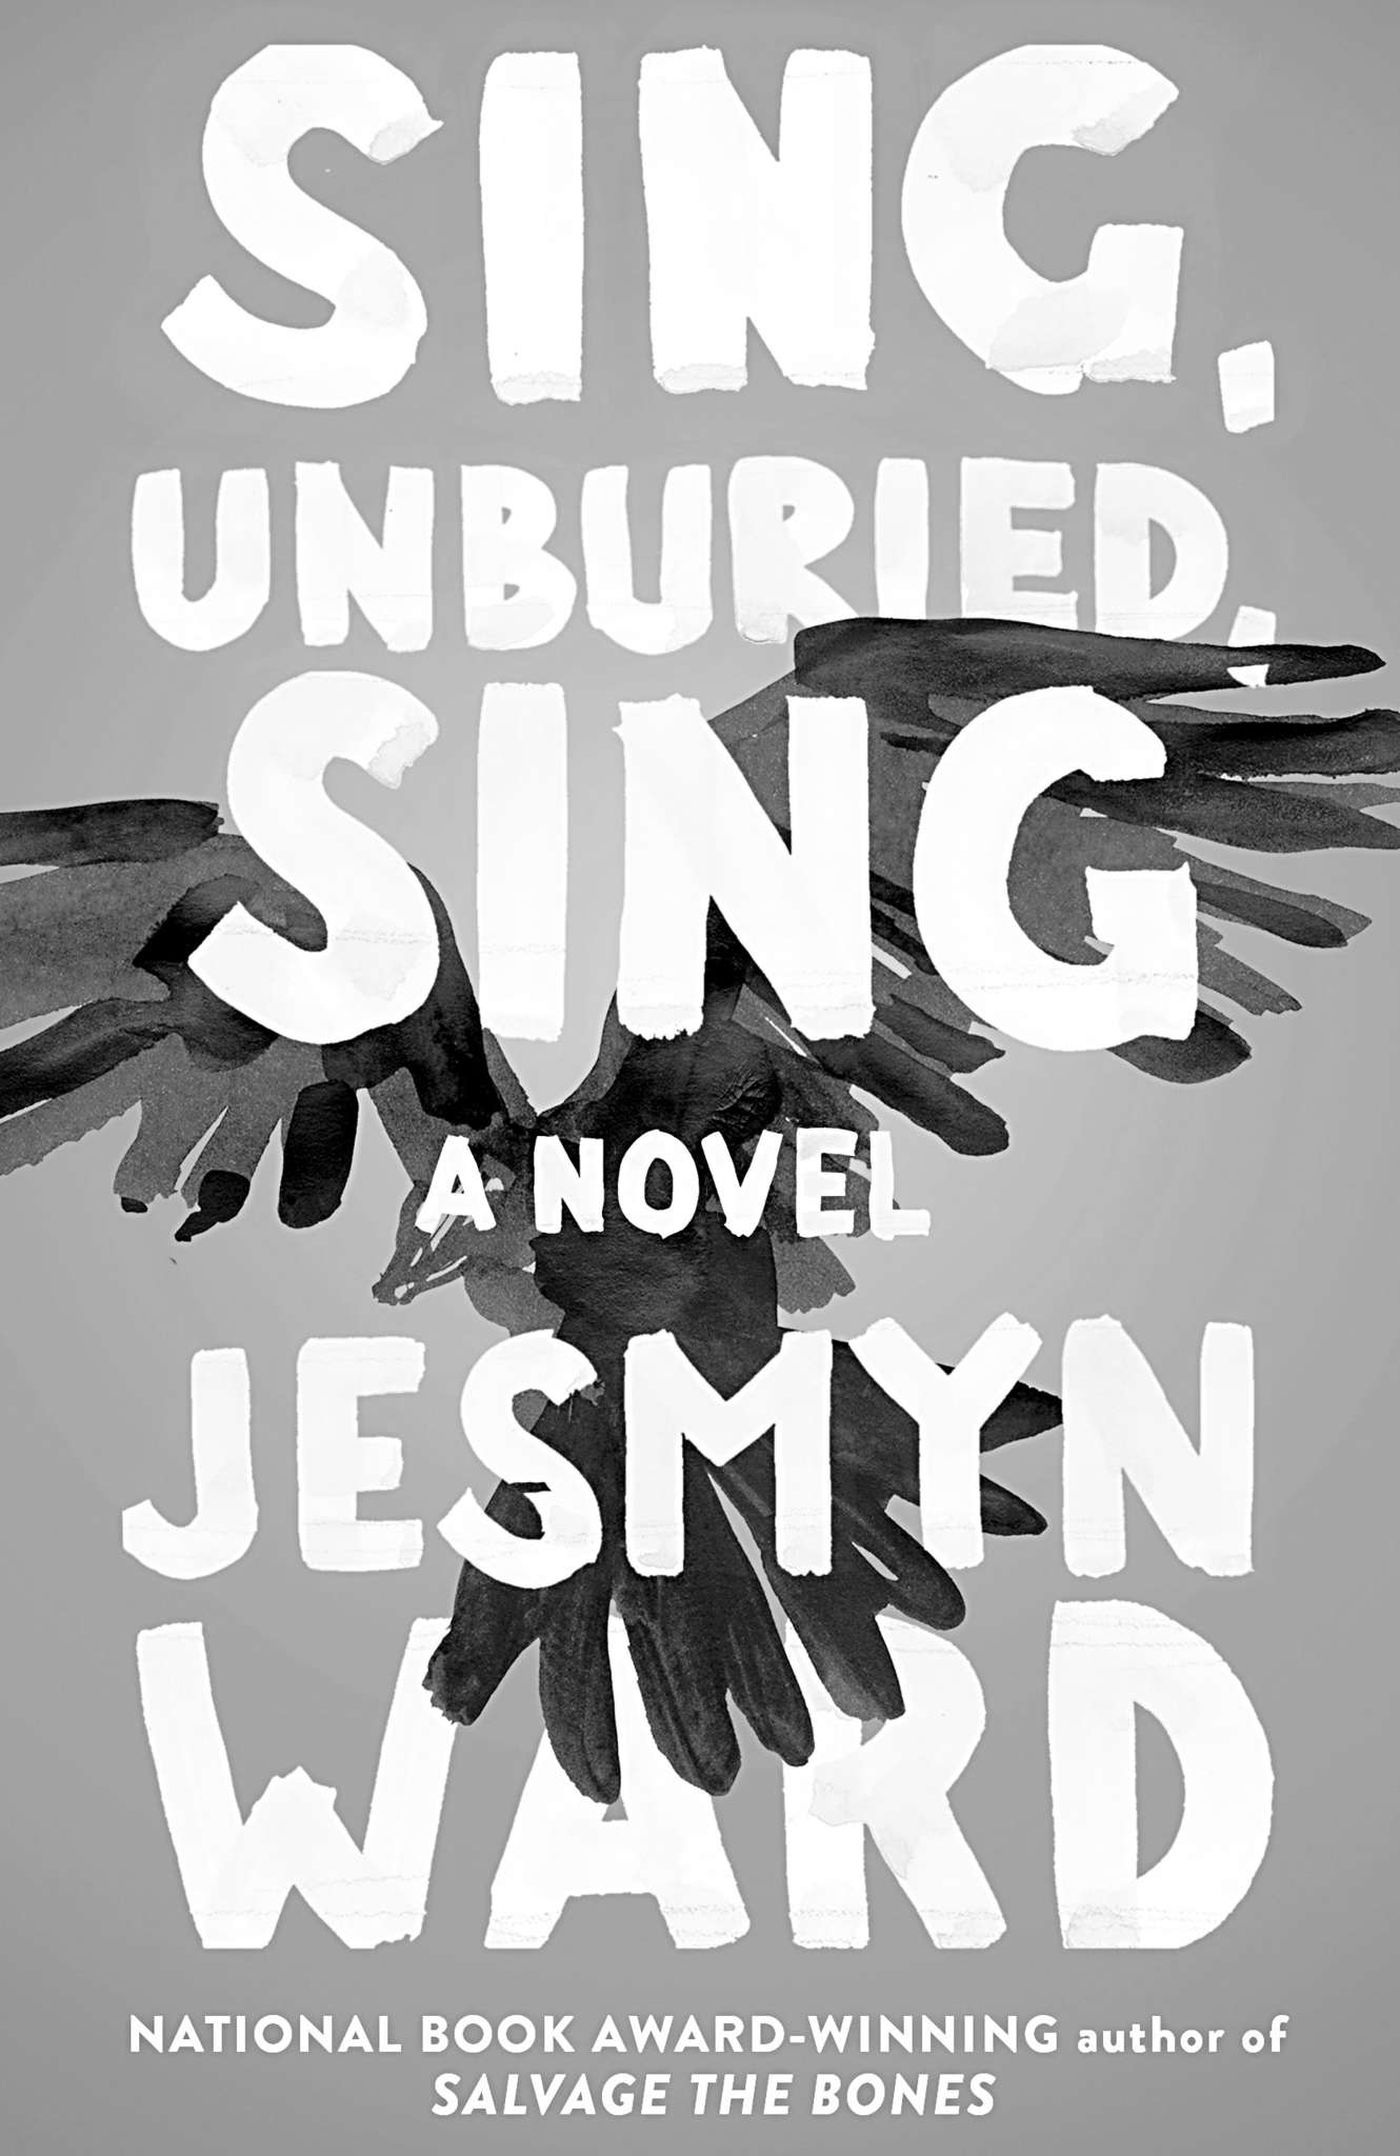 Jesmyn Ward goes to front of the choir with 'Sing, Unburied, Sing'